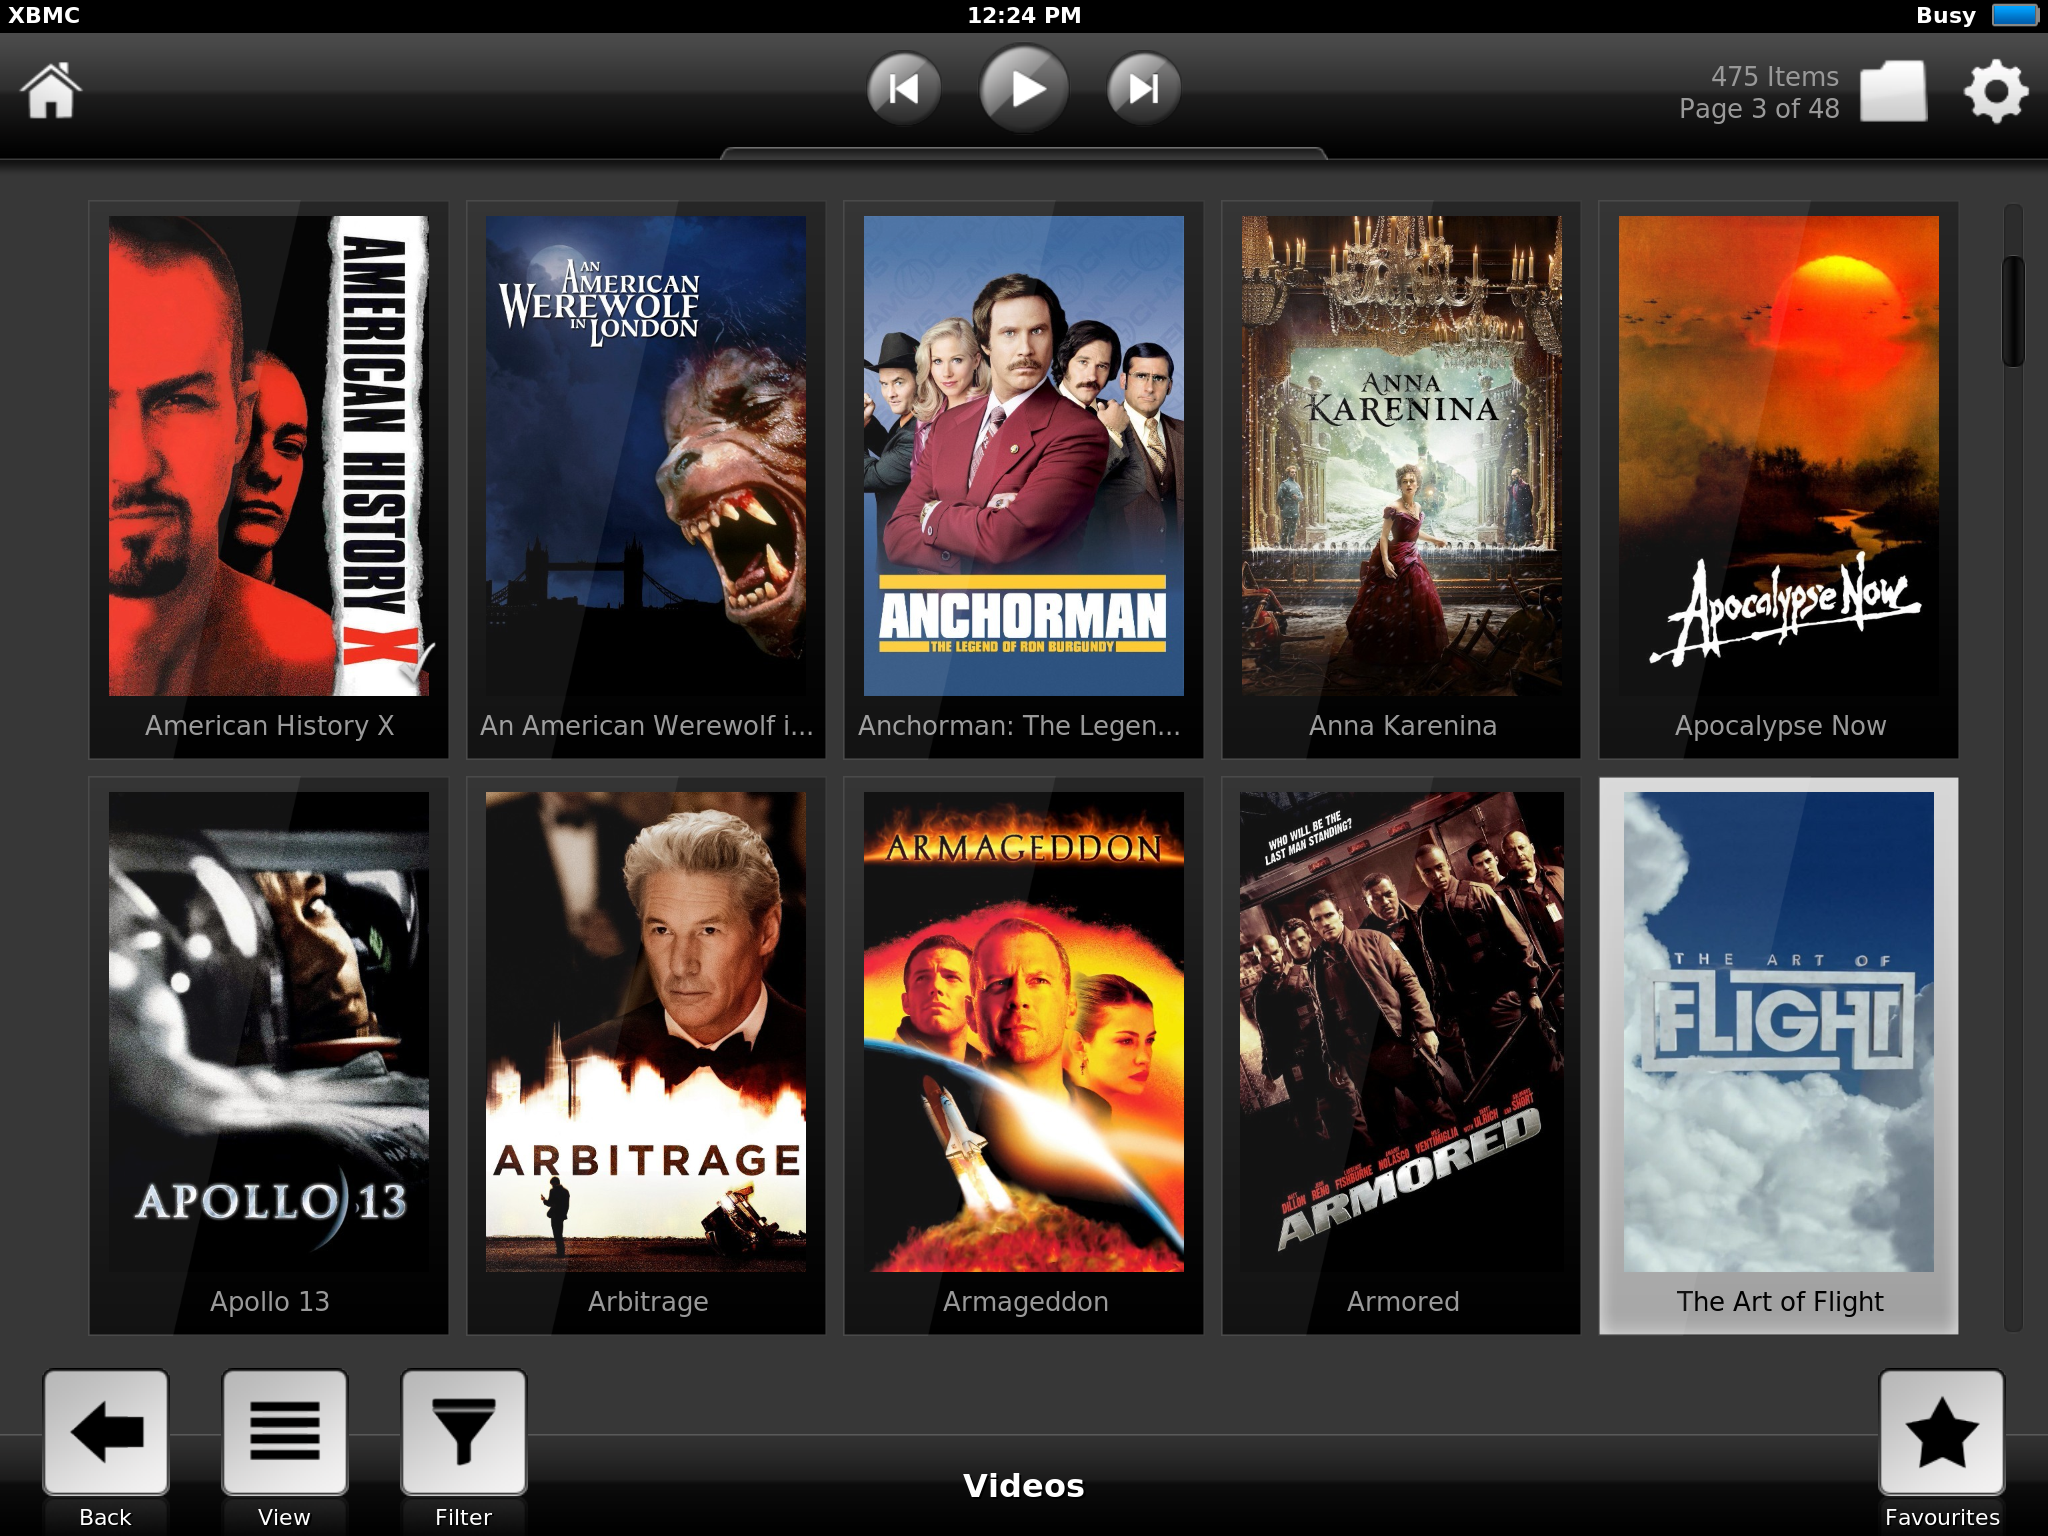 Connect XBMC iPad/iPod/iPhone to our XBMC Media Center